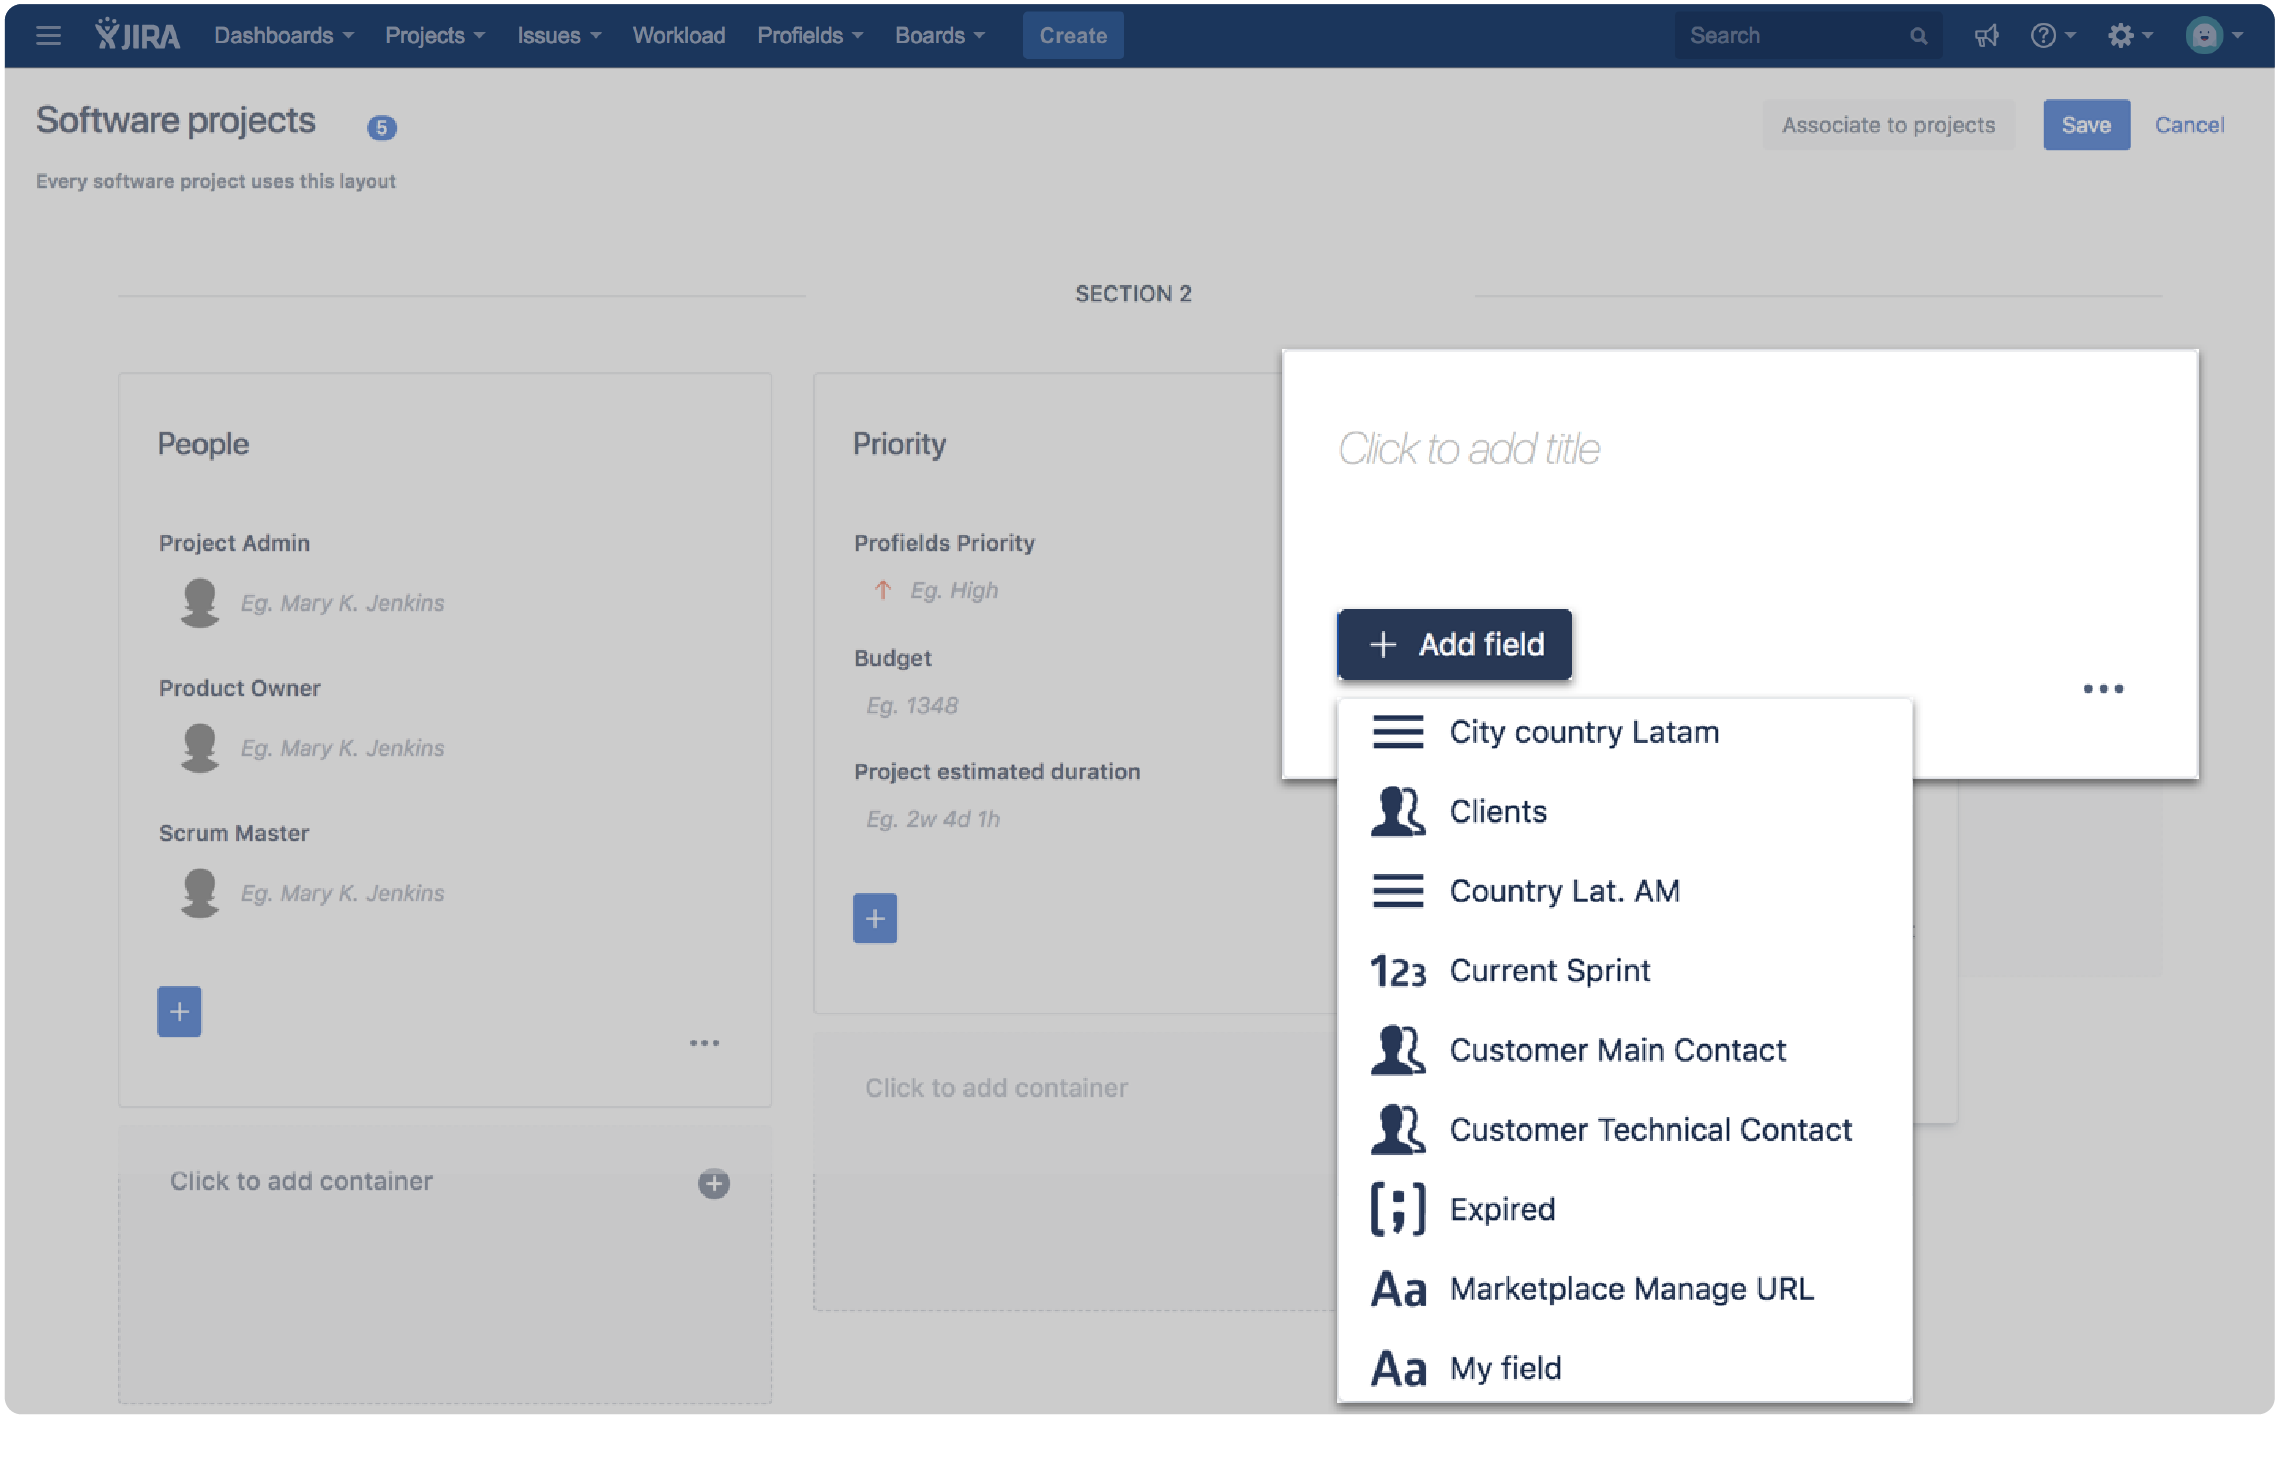 Jira Software prrojects custom fields